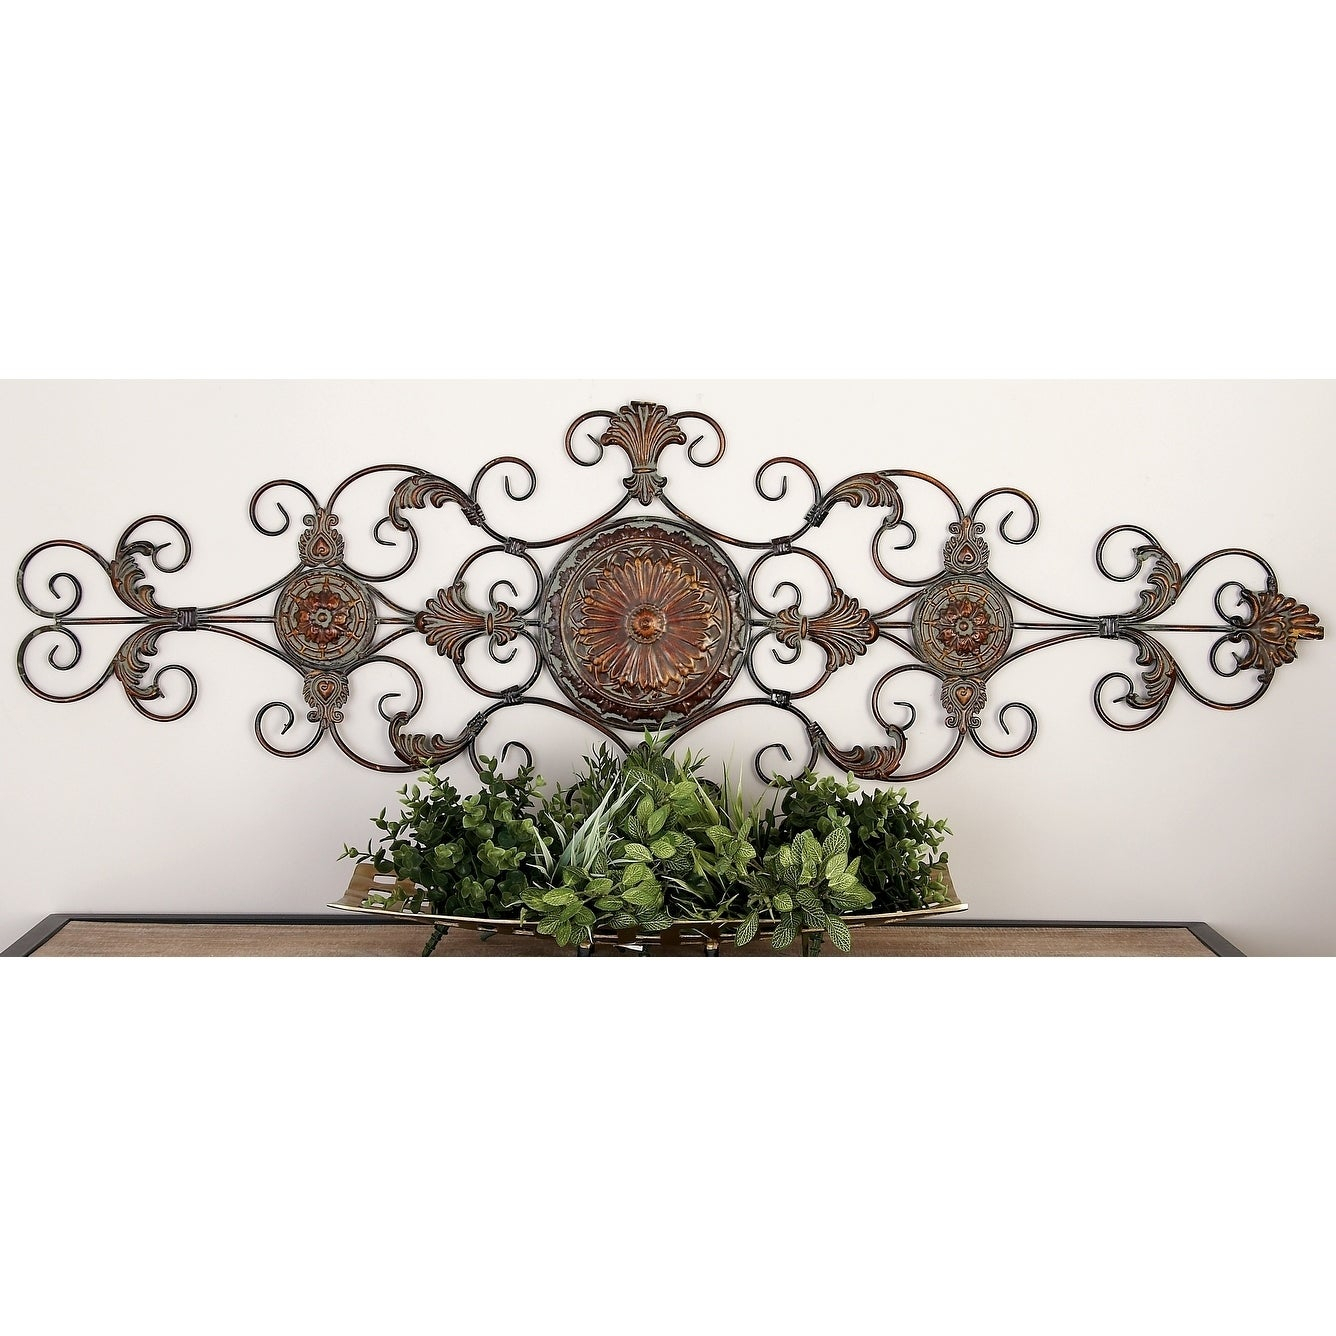 Shop Traditional 55 Inch Scroll And Acanthus Leaf Wall Decor Pertaining To Best And Newest Scroll Leaf Wall Decor (View 5 of 20)